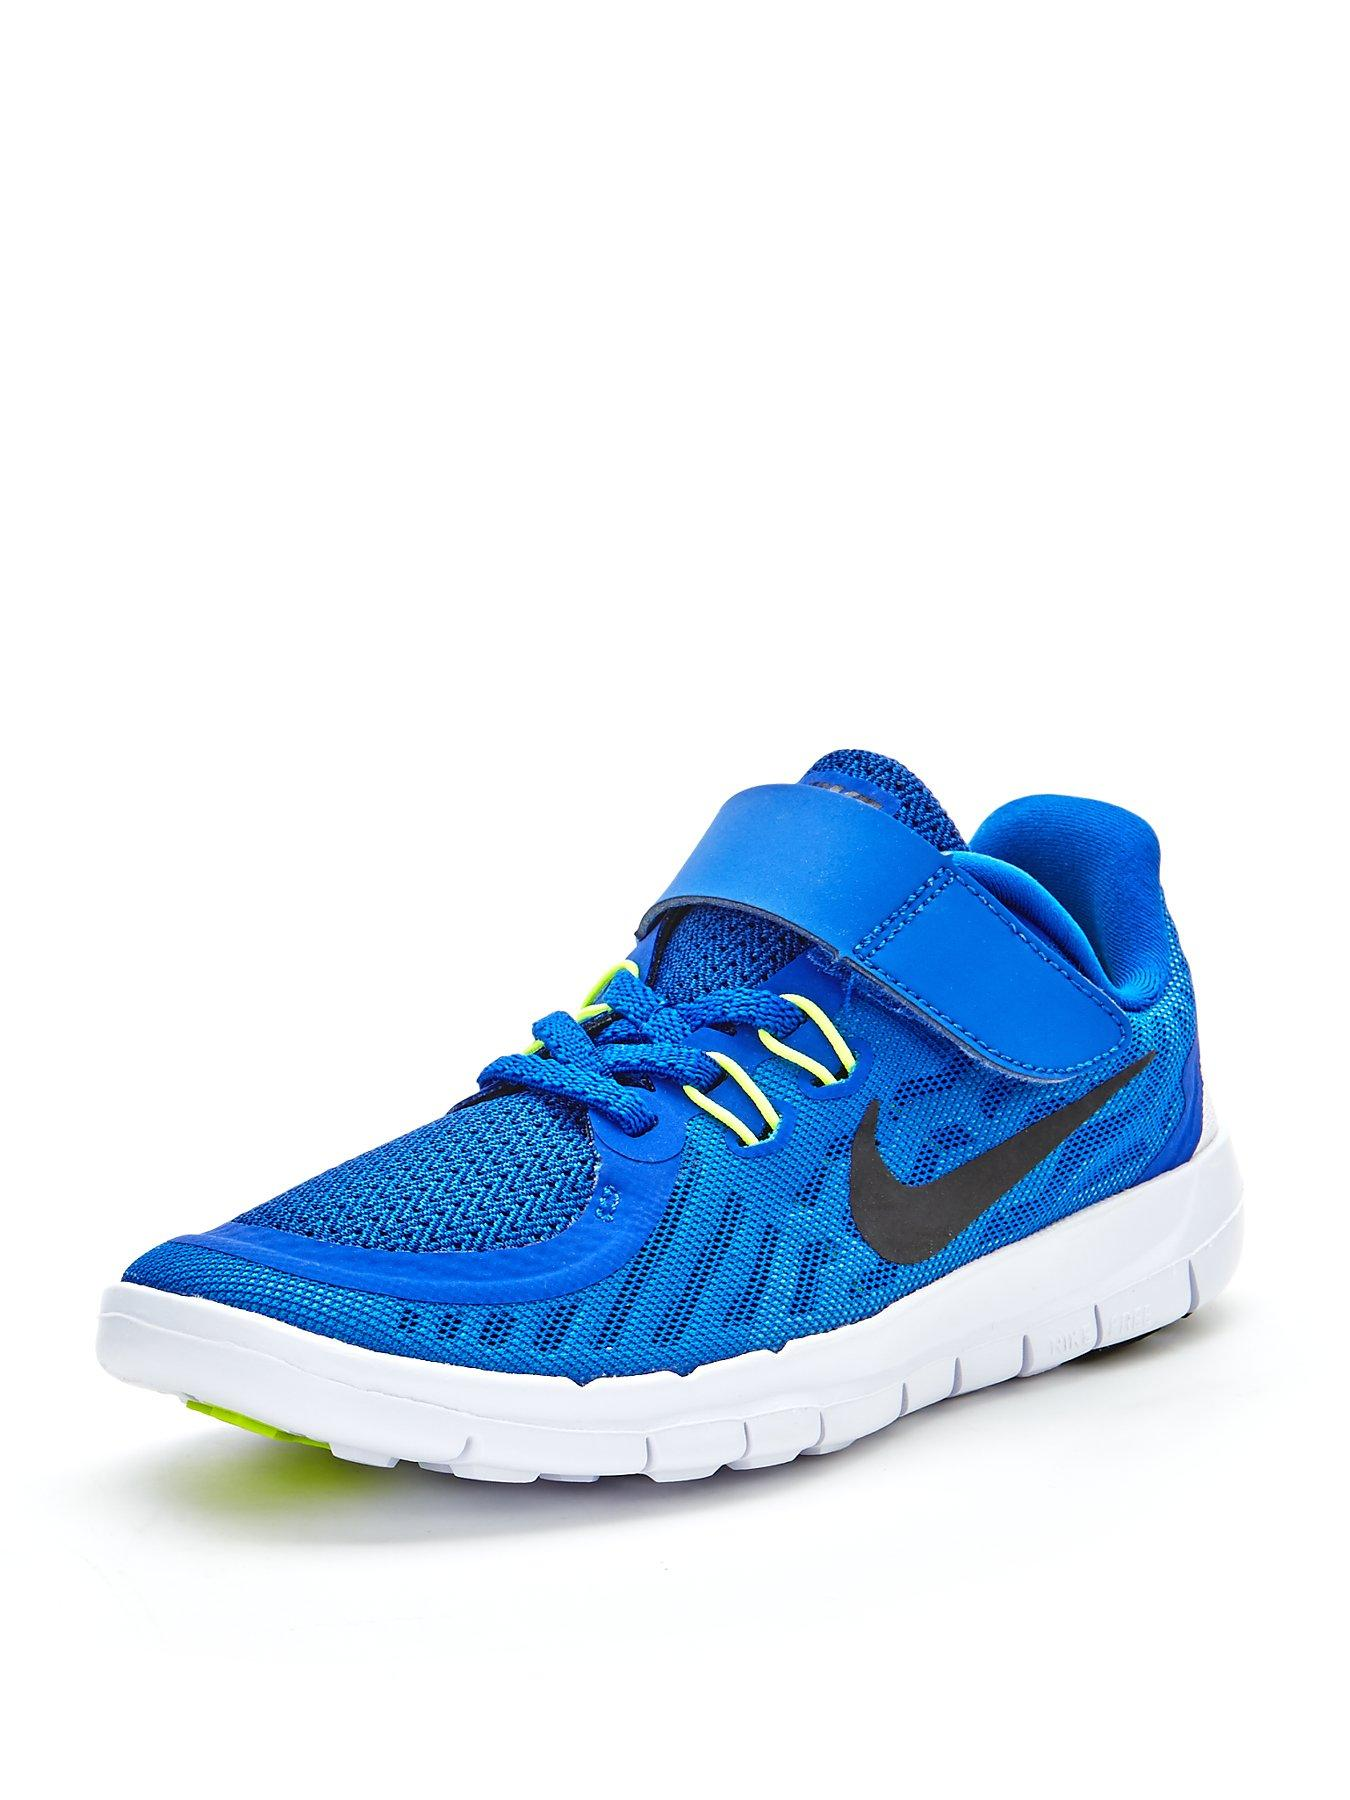 Nike online shopping uk